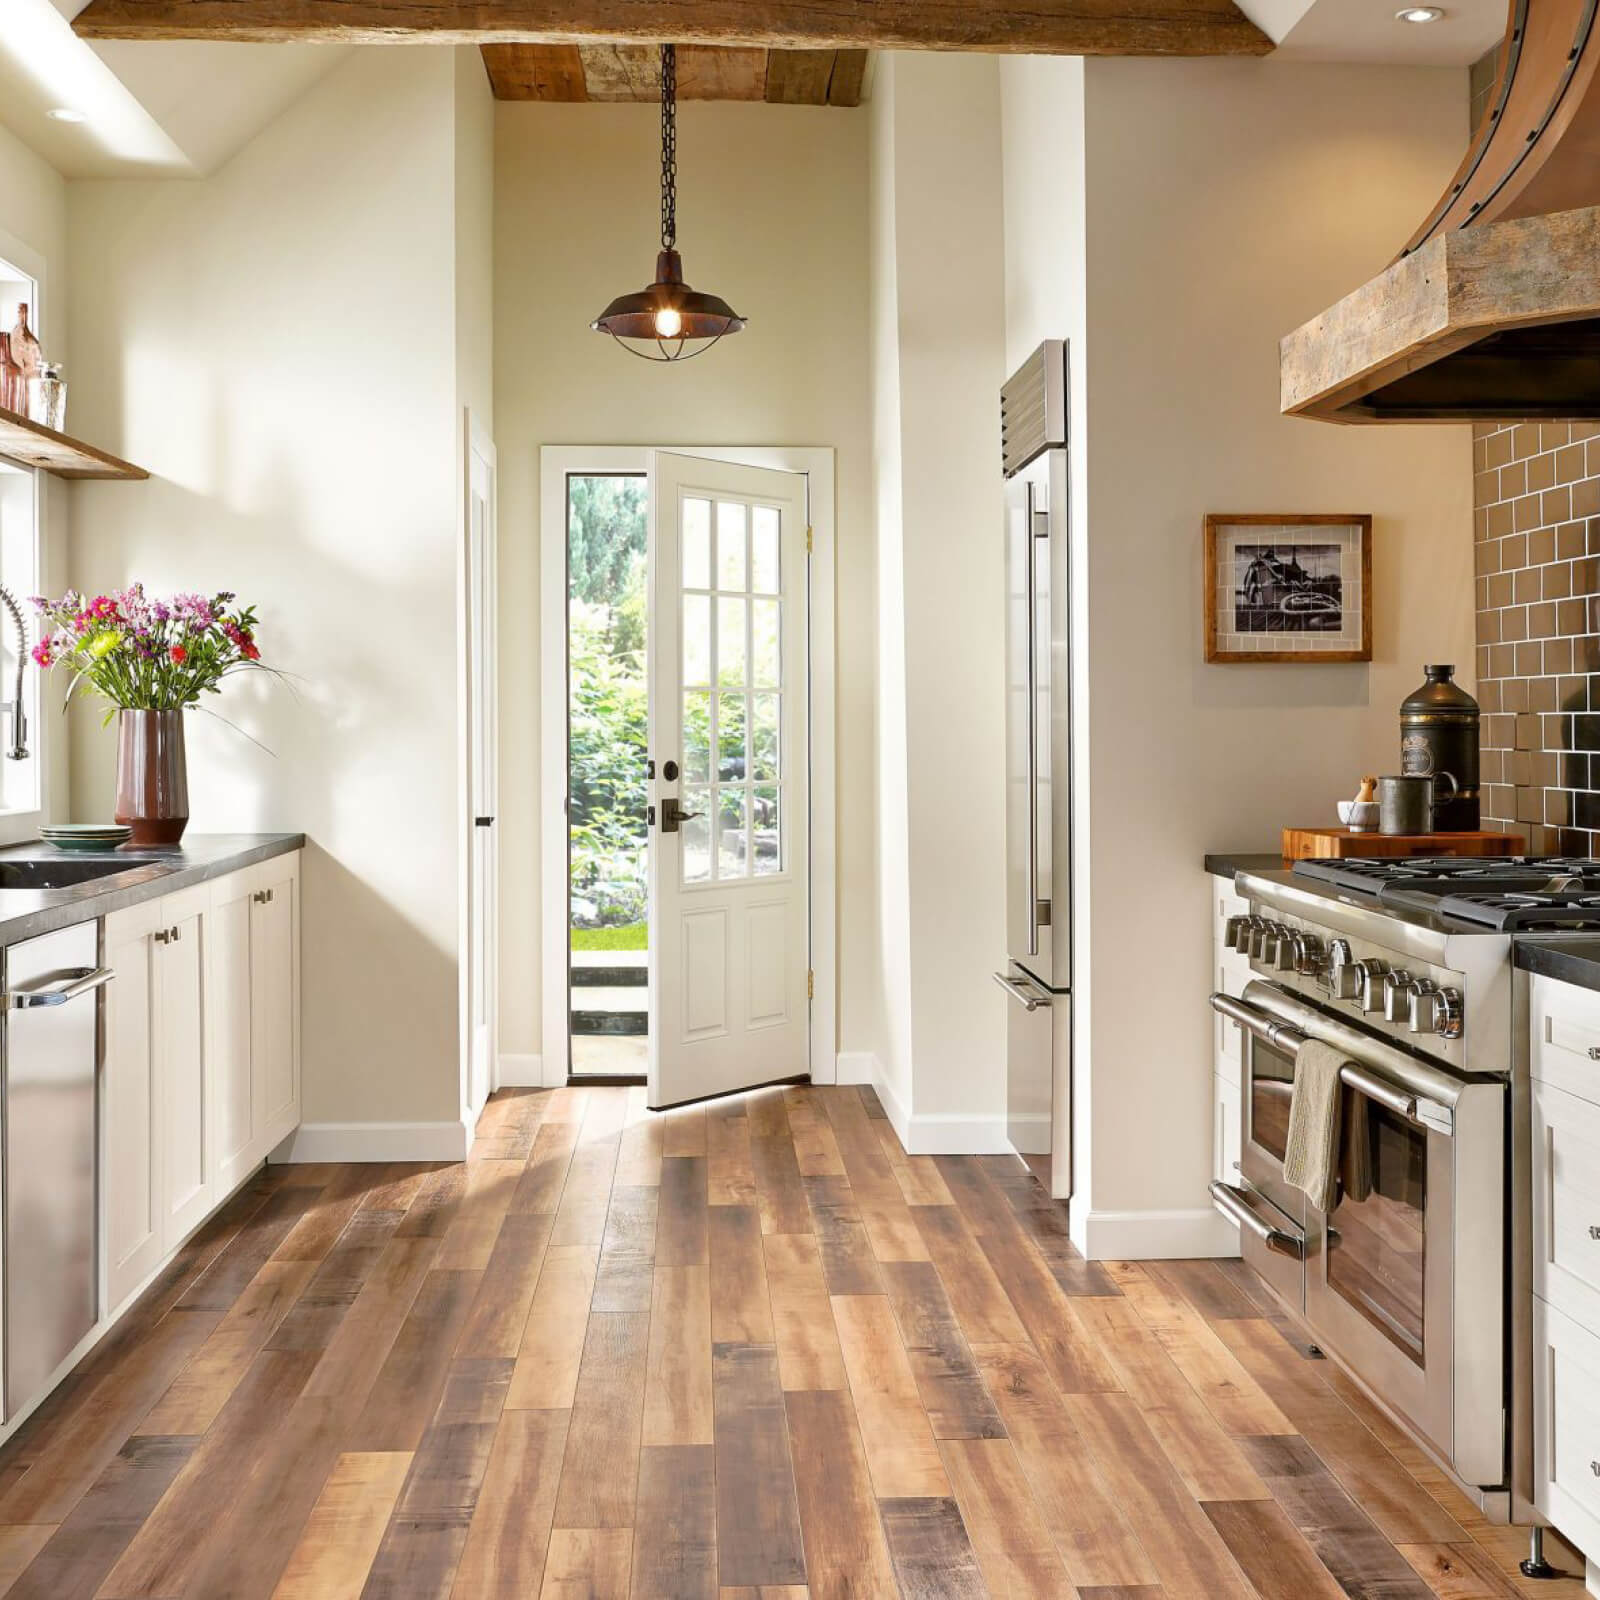 Should You Install Hardwood In Your Kitchen? | Christian Brothers Flooring & Interiors